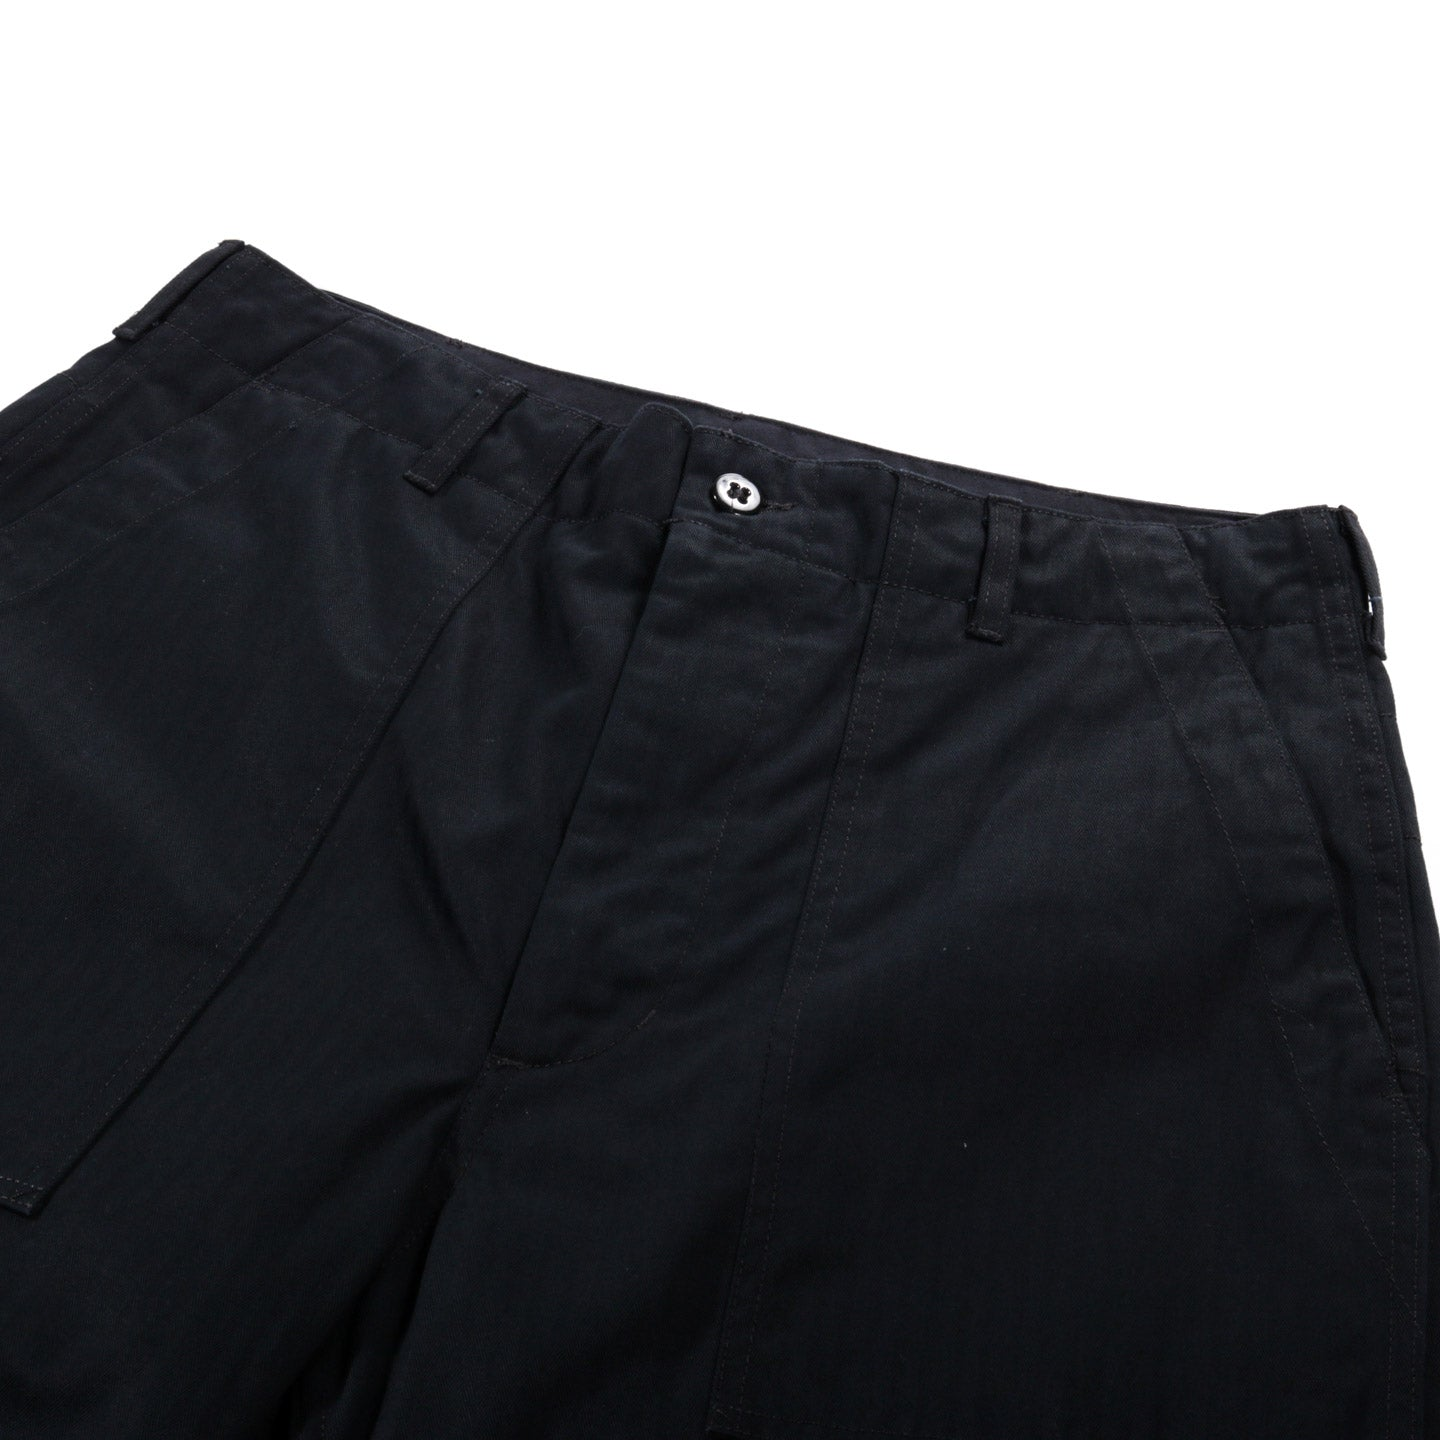 ENGINEERED GARMENTS FATIGUE PANT BLACK COTTON HERRINGBONE TWILL